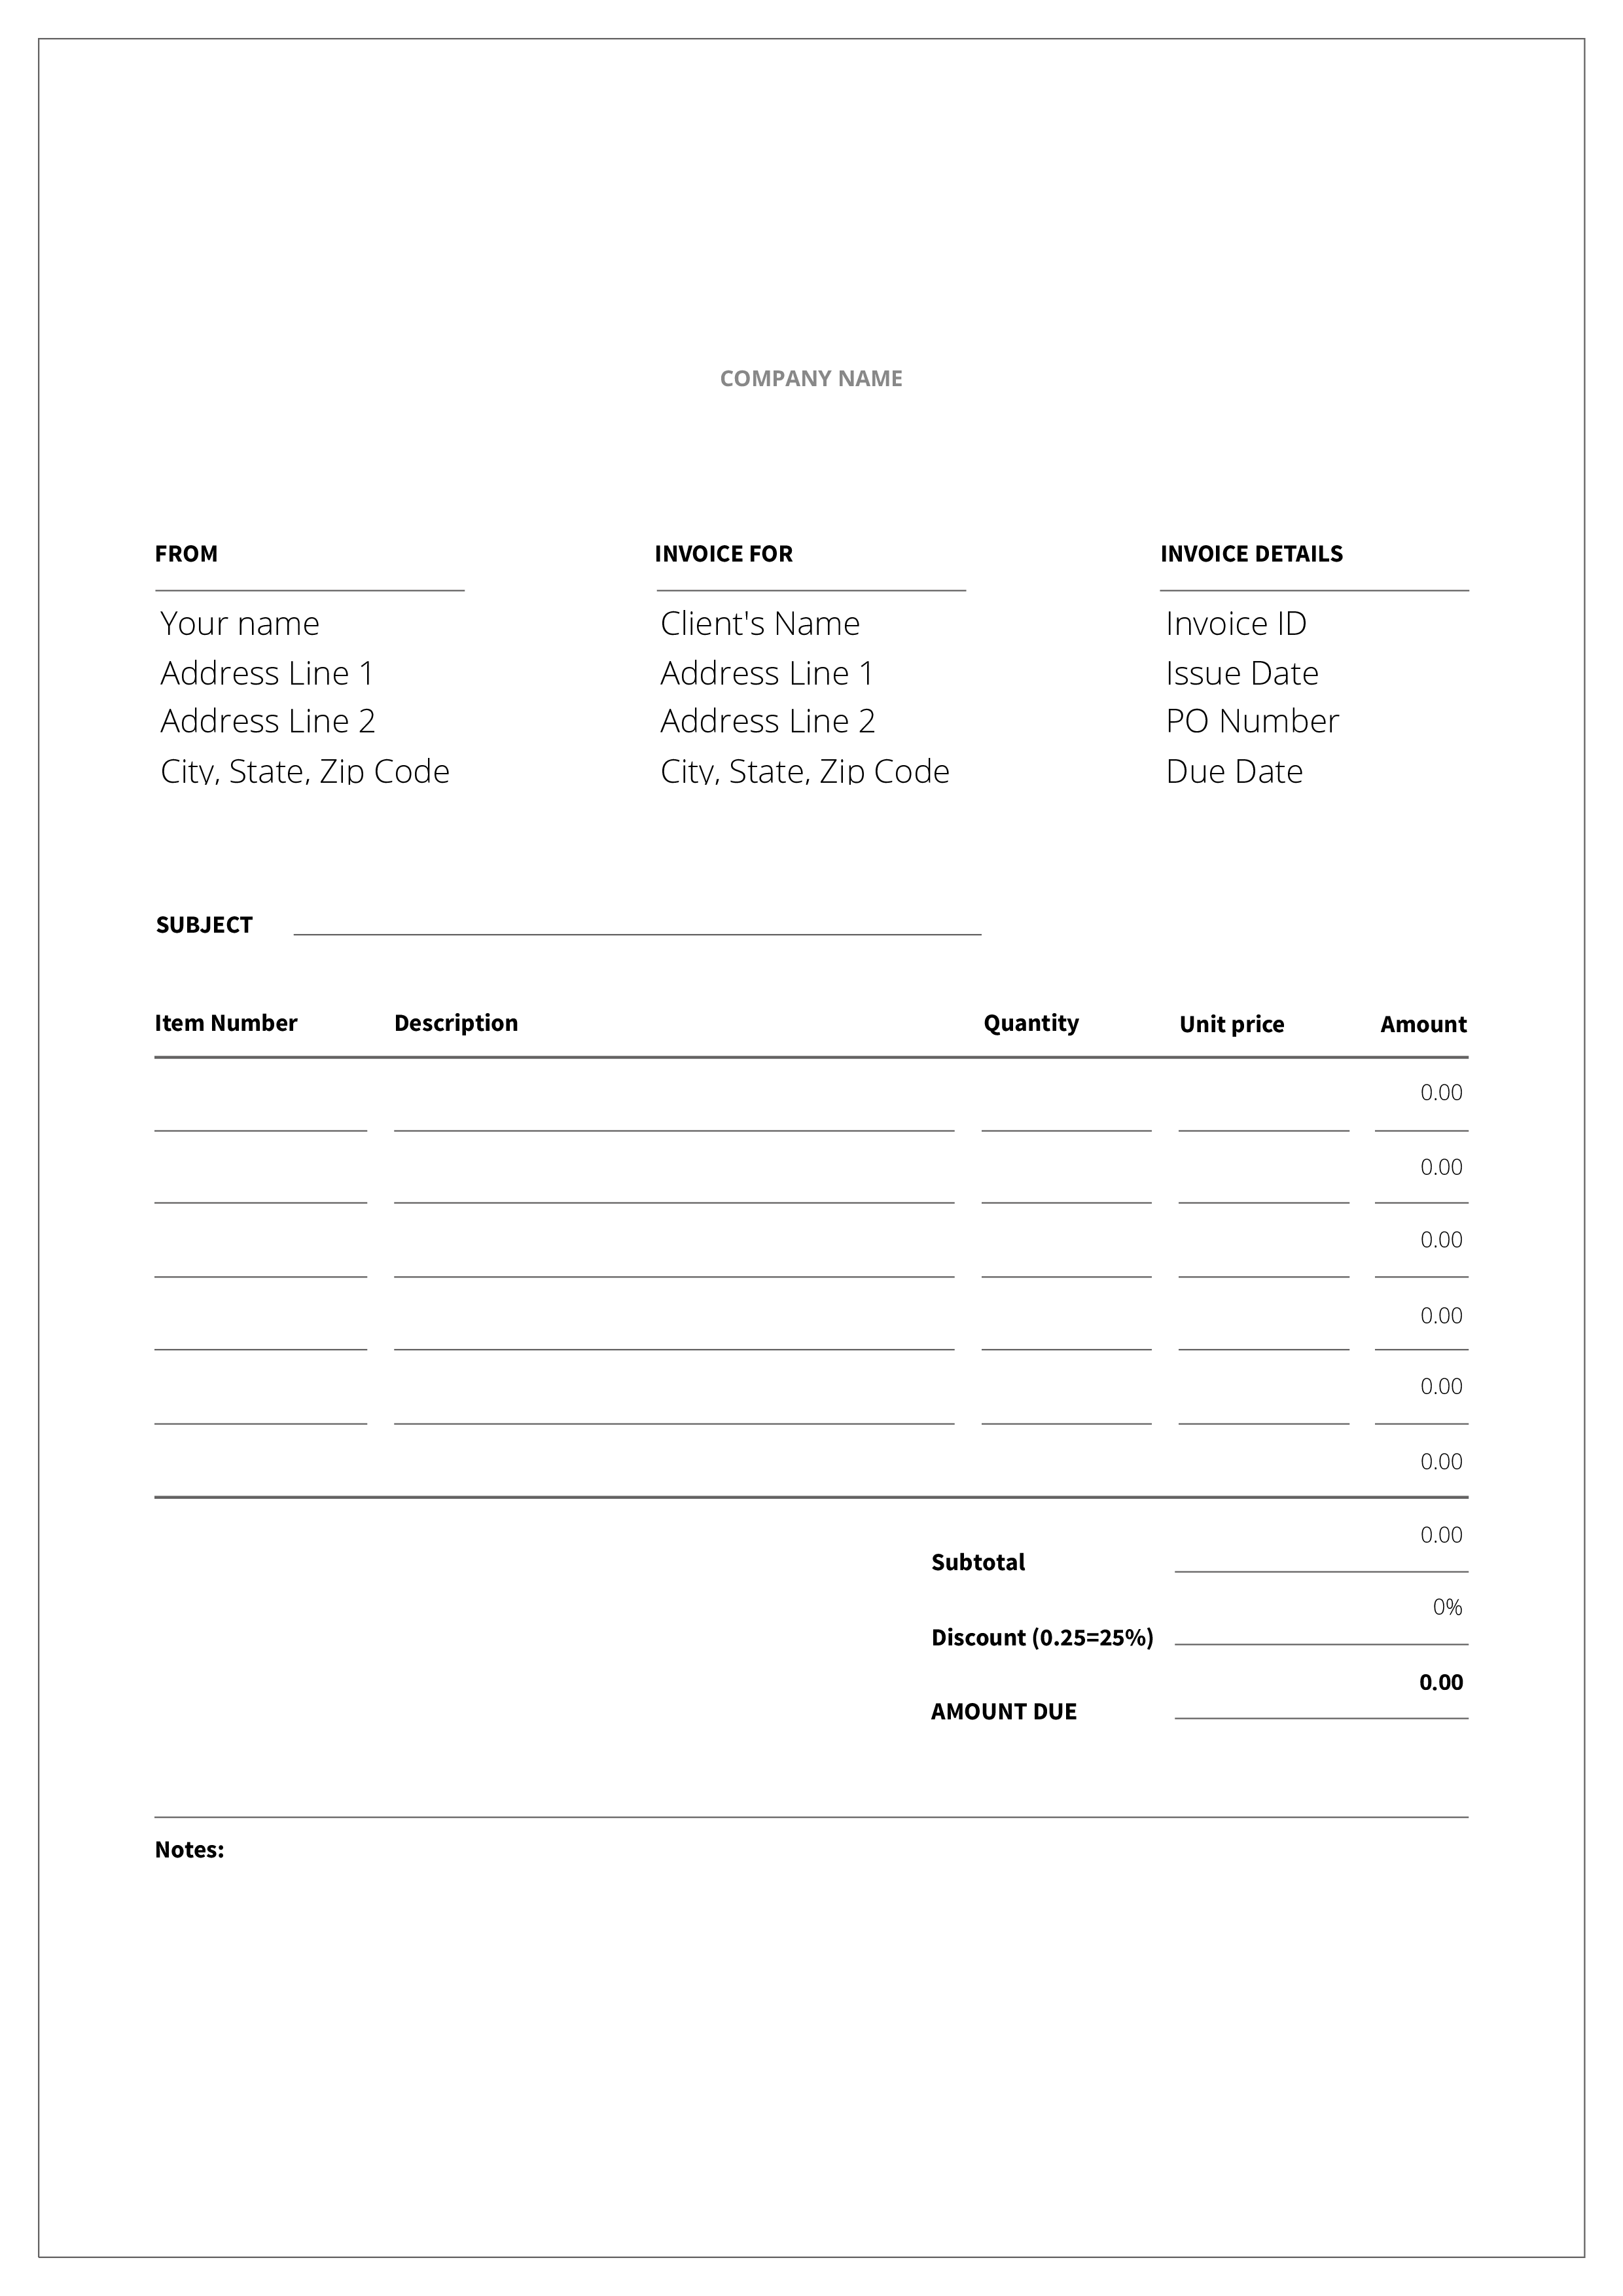 Free Blank Bakery Invoice Templates At Allbusinesstemplates